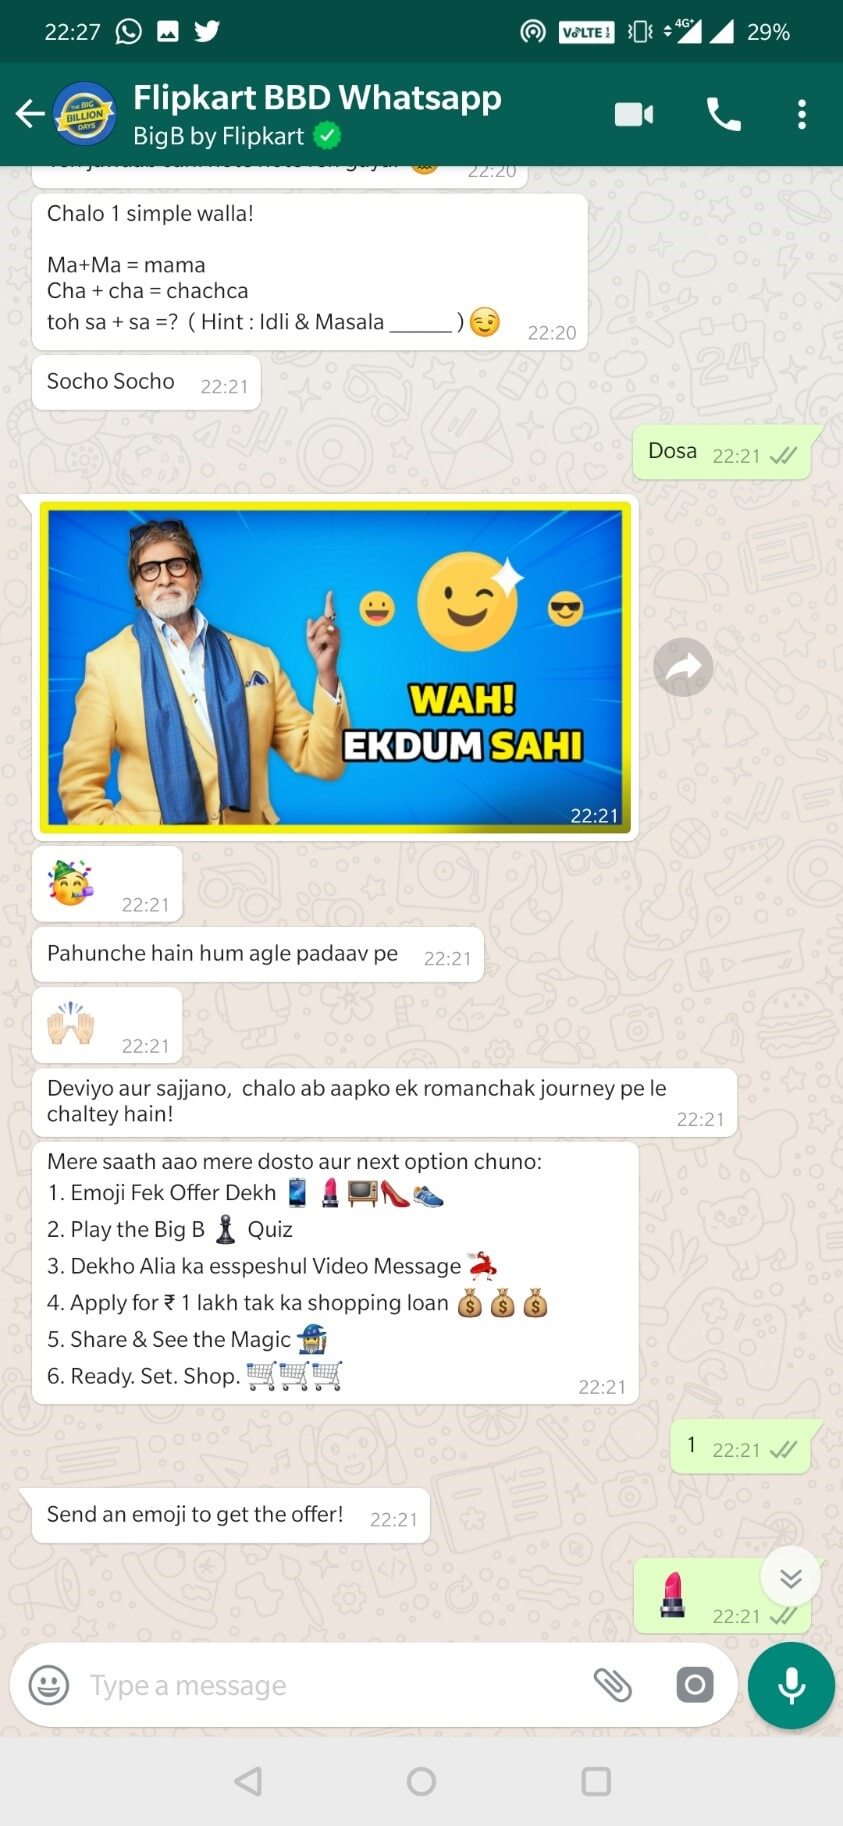 Flipkart's Big Billion Big B WhatsApp Bot Chat Options